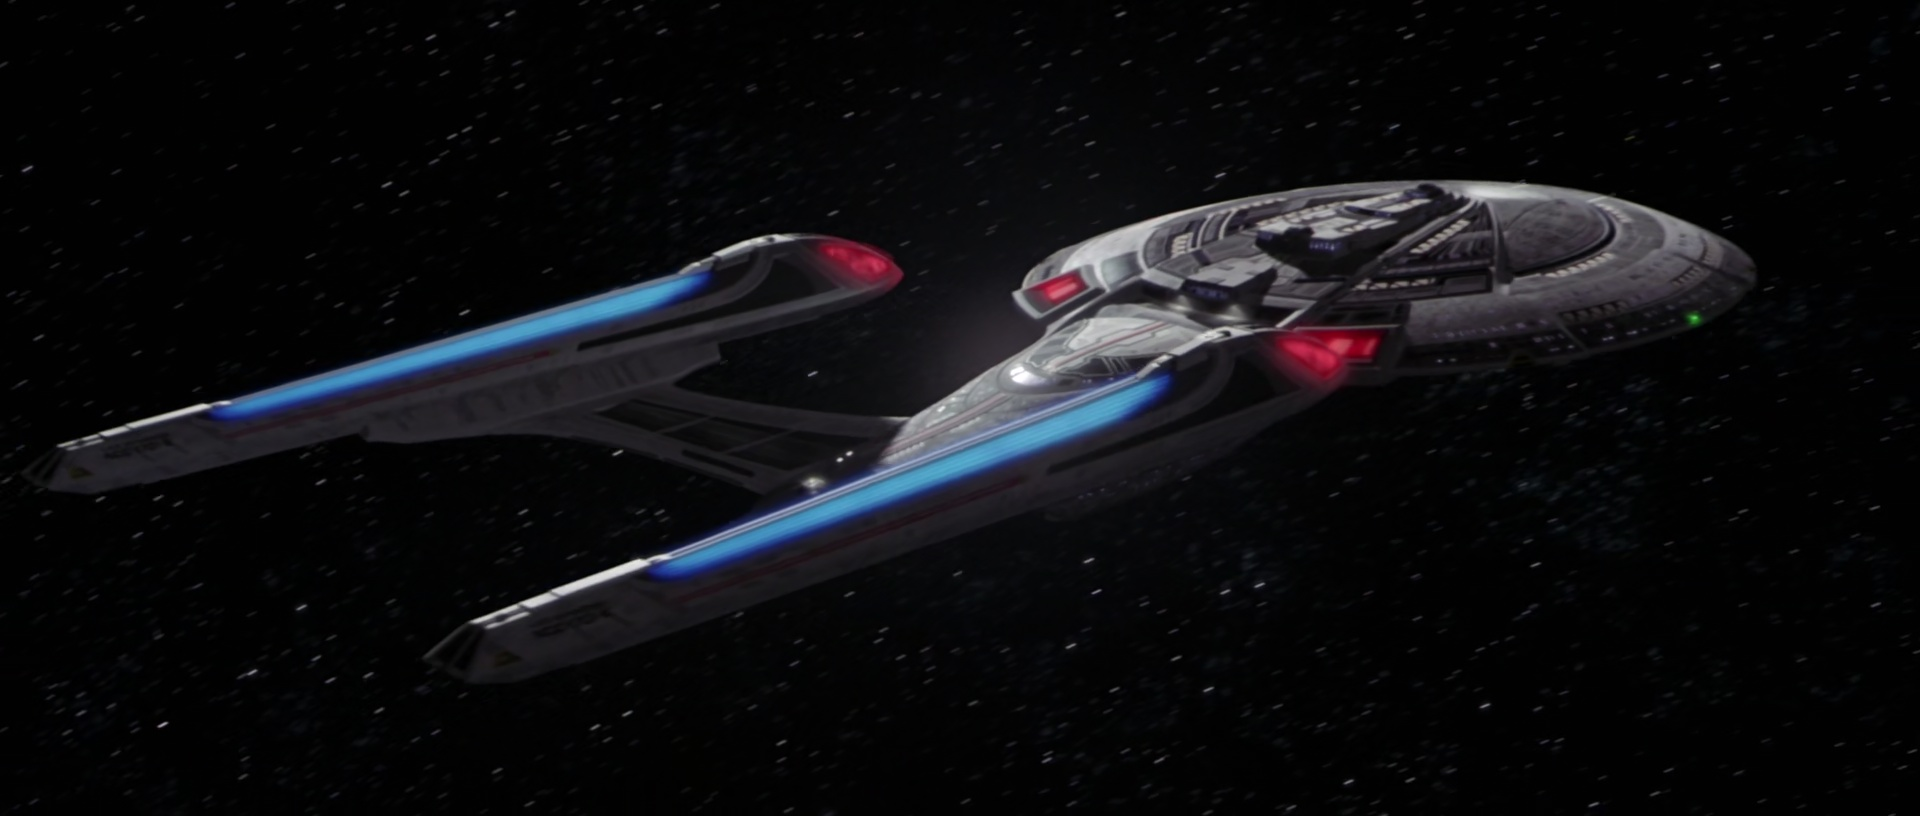 USS ENTERPRISE (NCC-1701-E) - Memory Alpha, the Star Trek Wiki